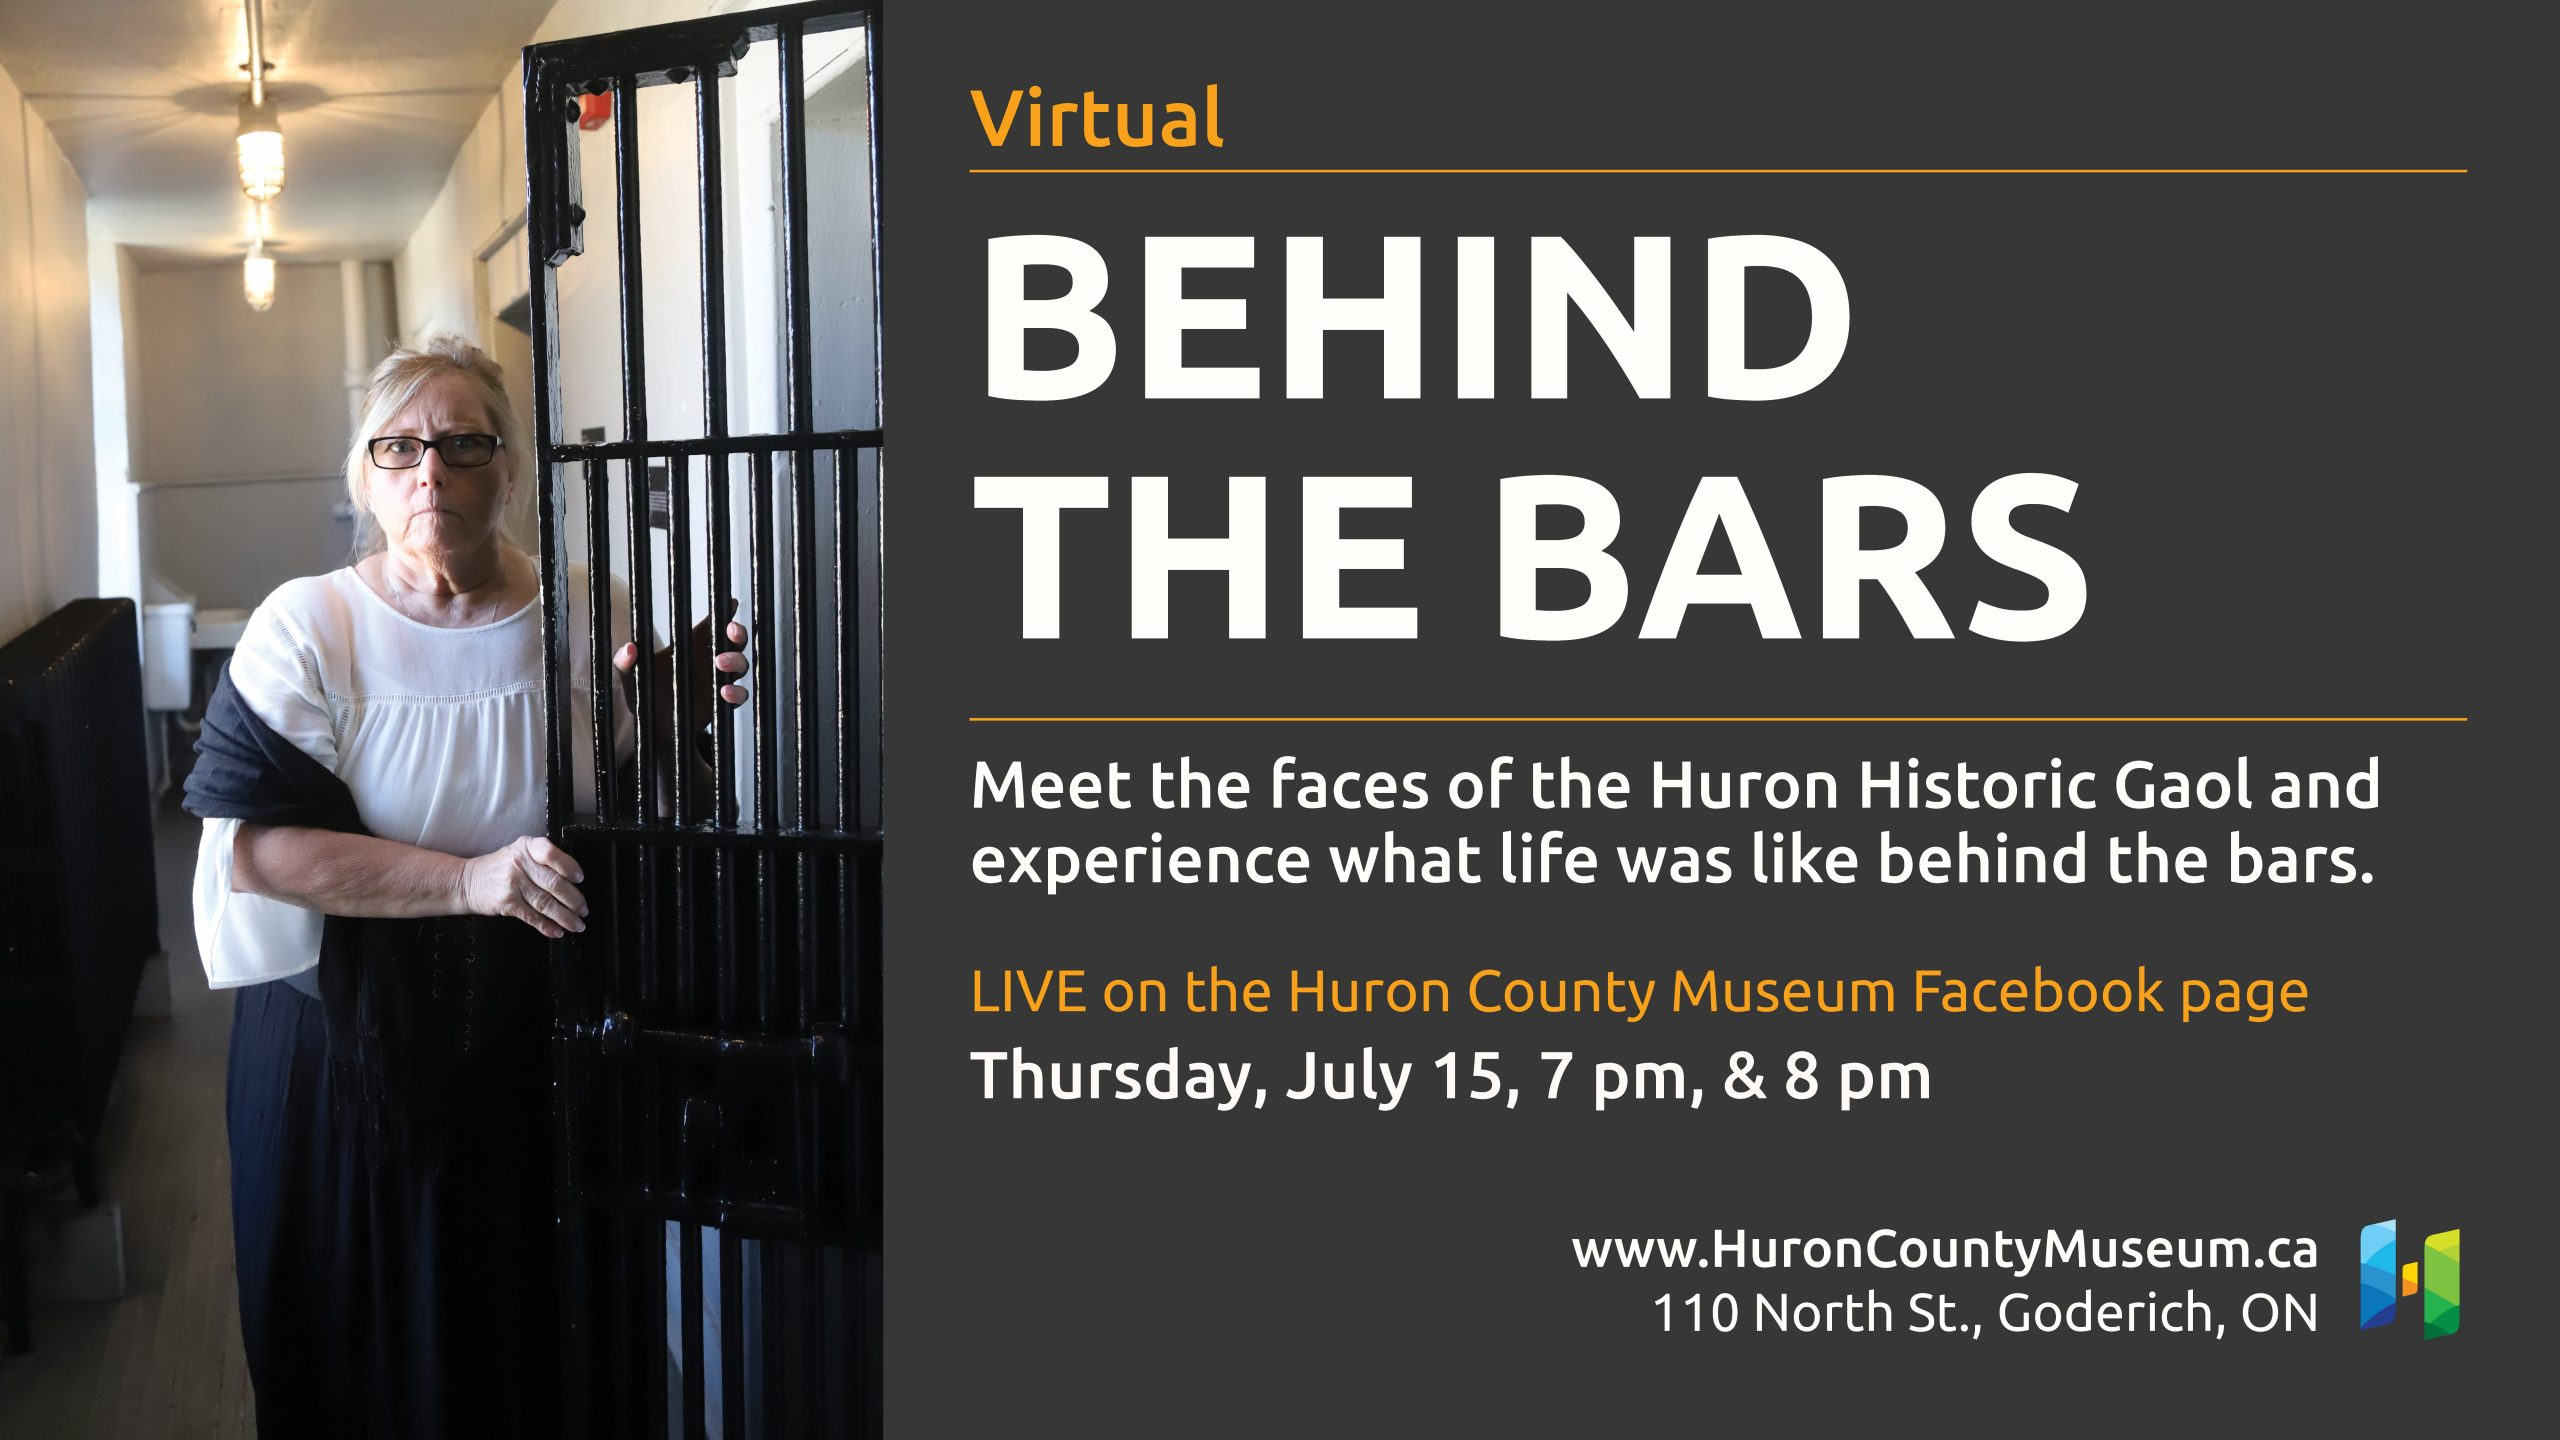 Virtual Behind the Bars event